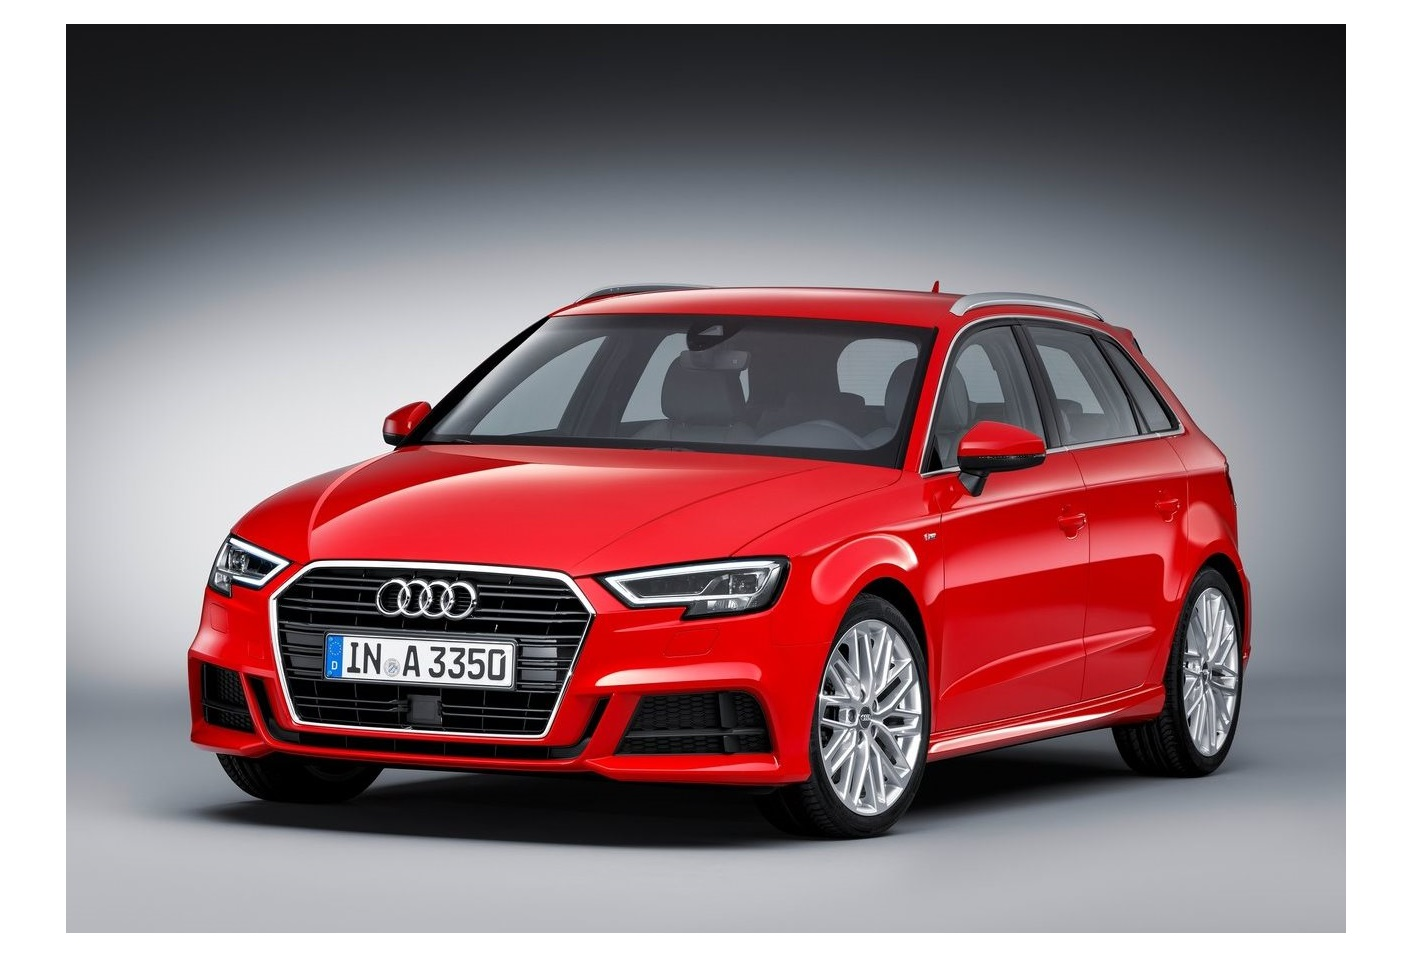 Audi A Sportback Prices In Egypt Gulf Specs Reviews For - Audi car egypt